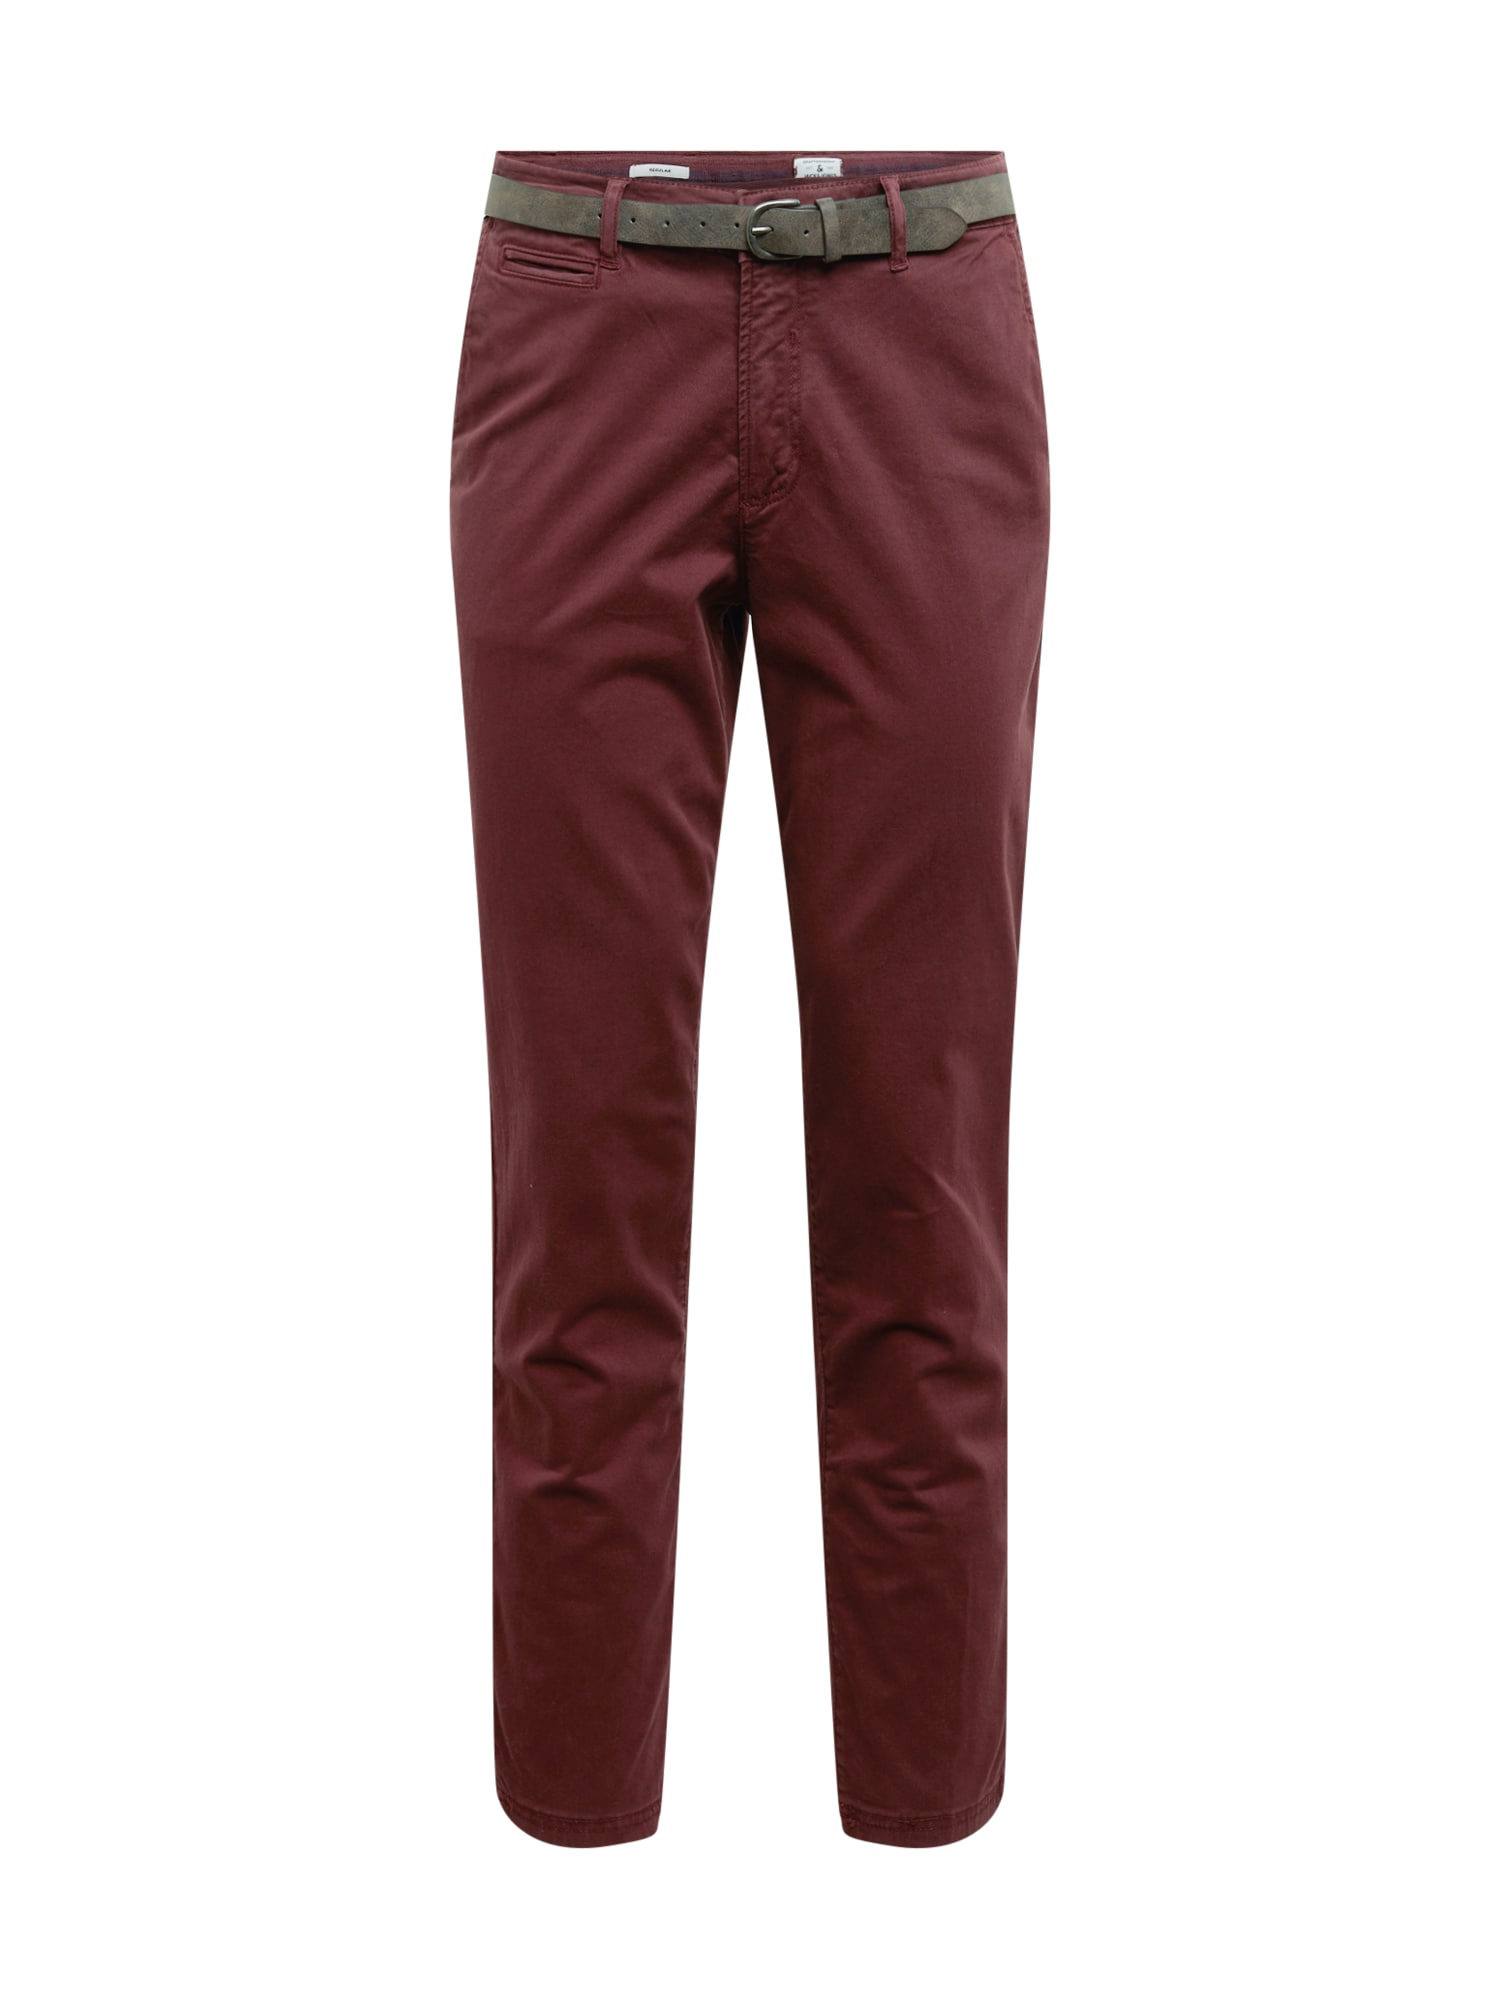 JACK & JONES Chino kalhoty 'ROY JAMES'  bordó